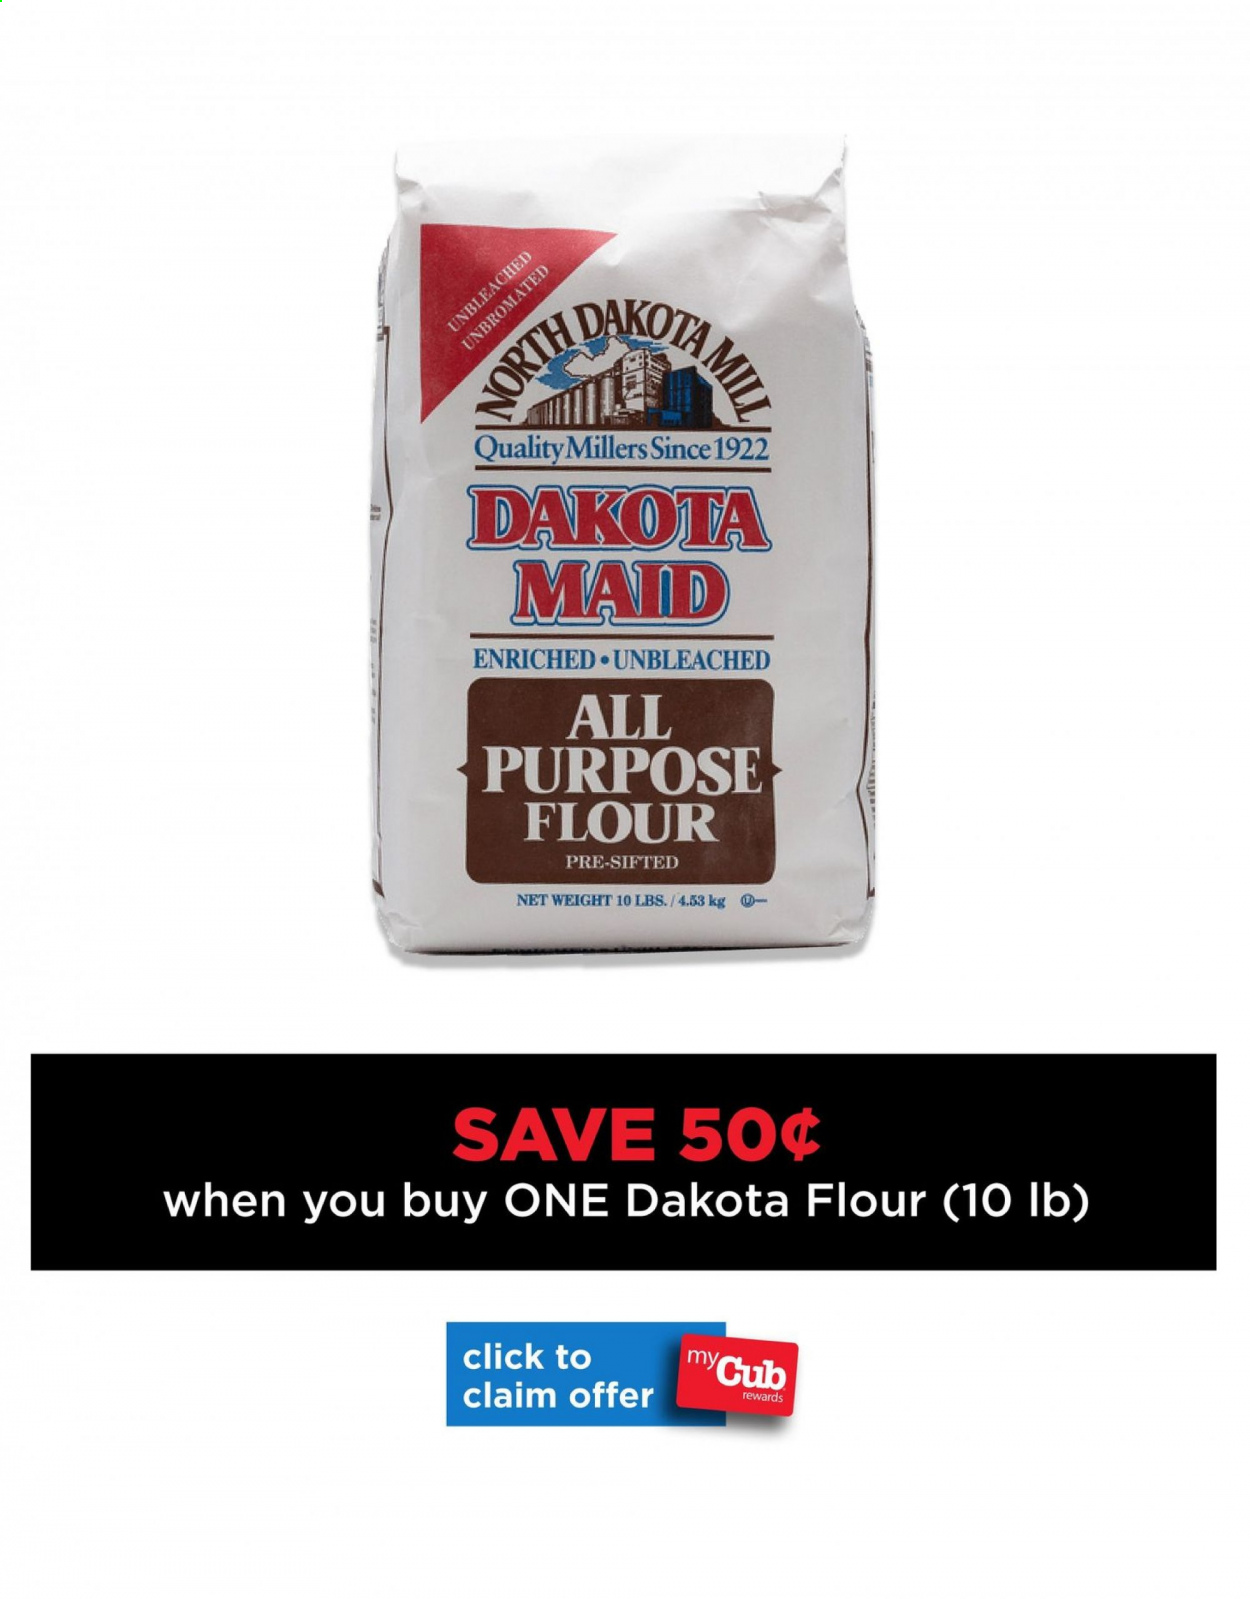 Cub Foods Flyer - 10.11.2020 - 10.31.2020 - Sales products - all purpose flour, flour. Page 1.